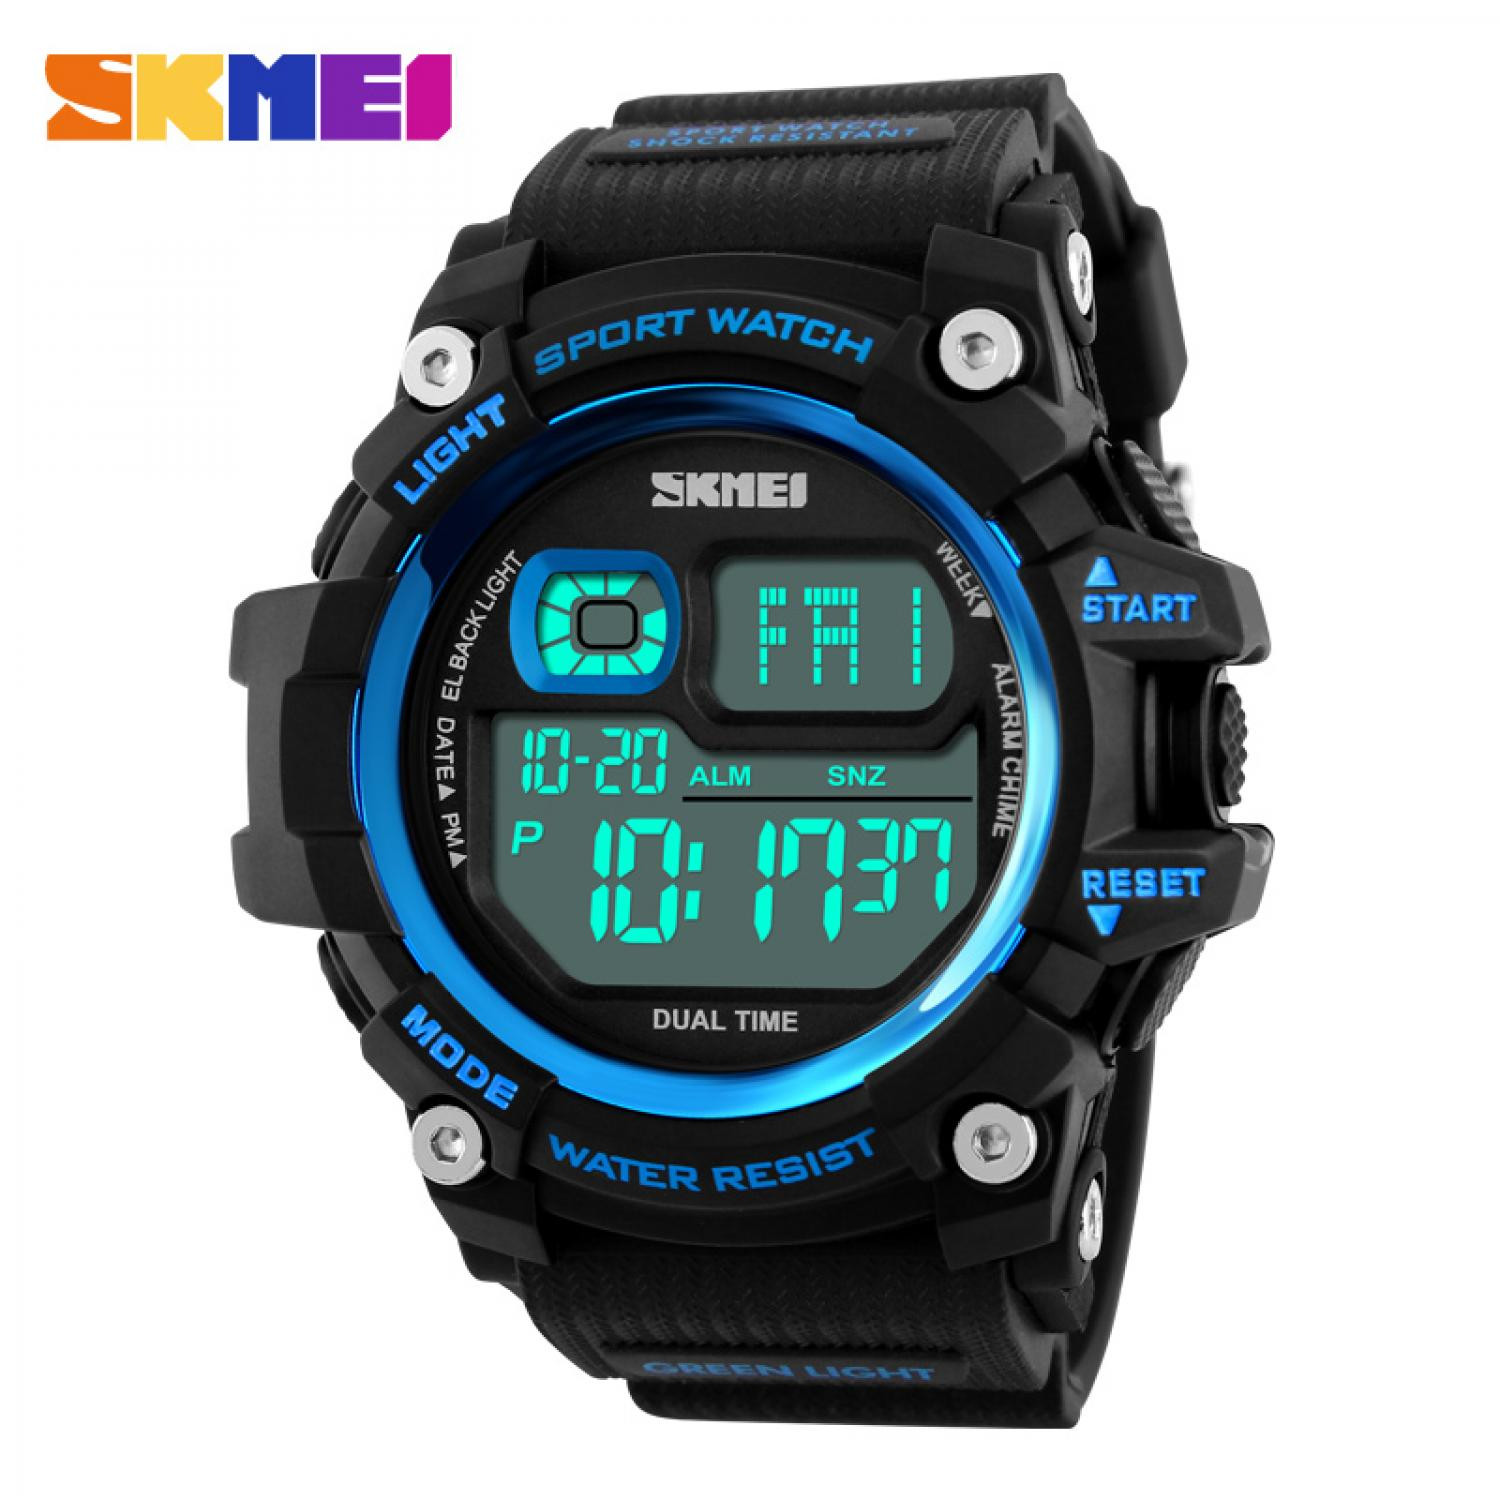 Jam Tangan Pria SKMEI Digital S-Shock Sport Watch Original DG1229 Biru